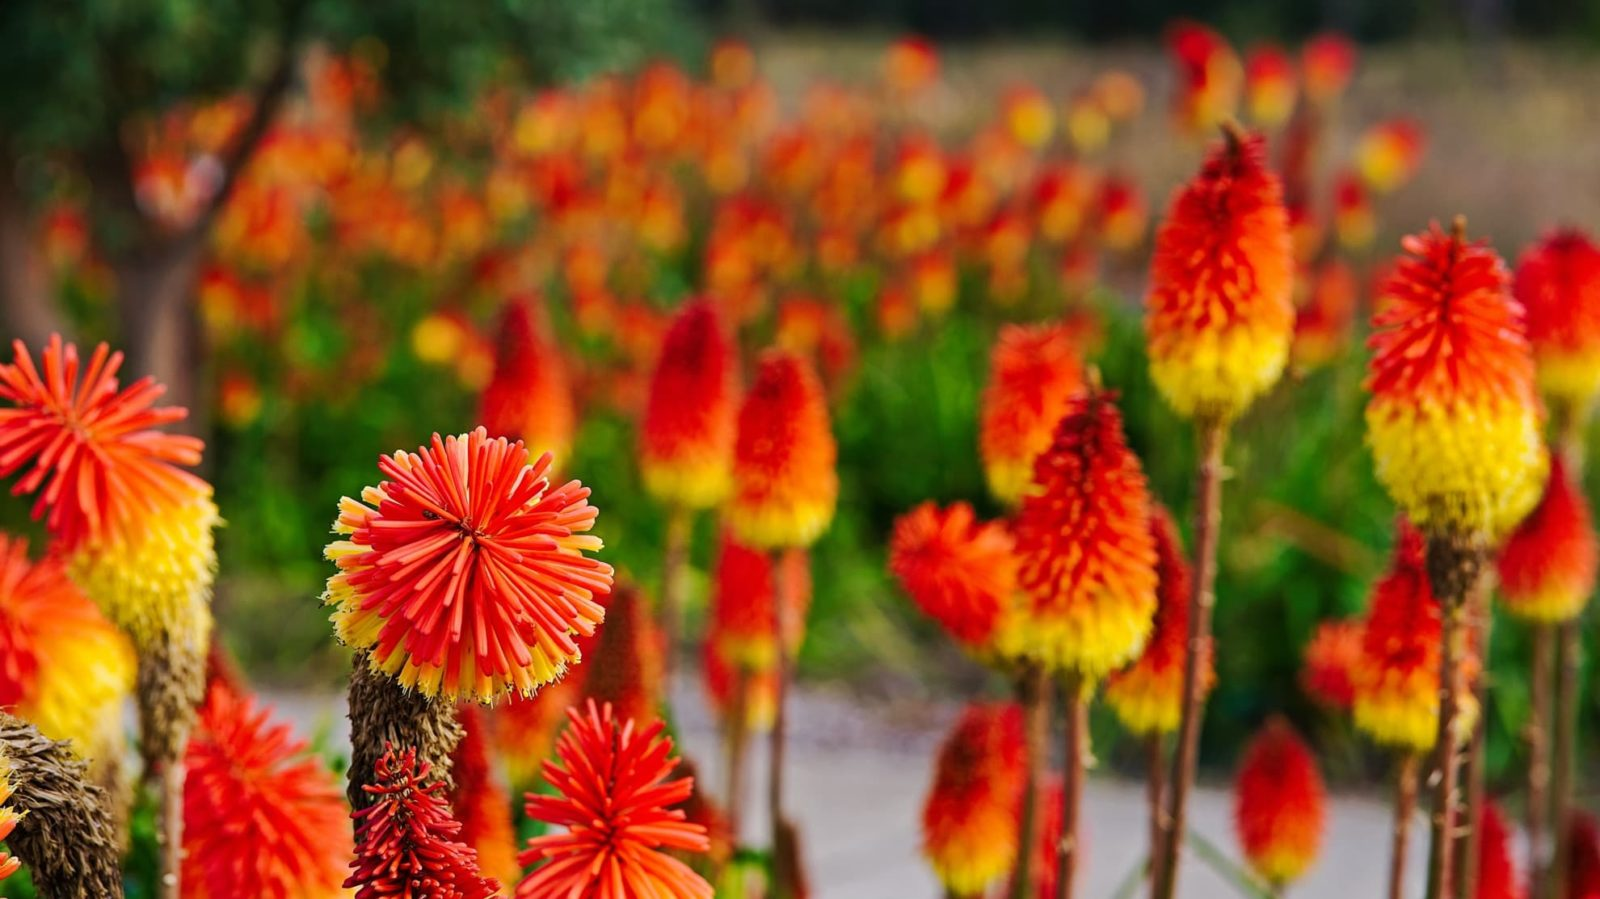 bright red and yellow torch lilies in an outdoor space